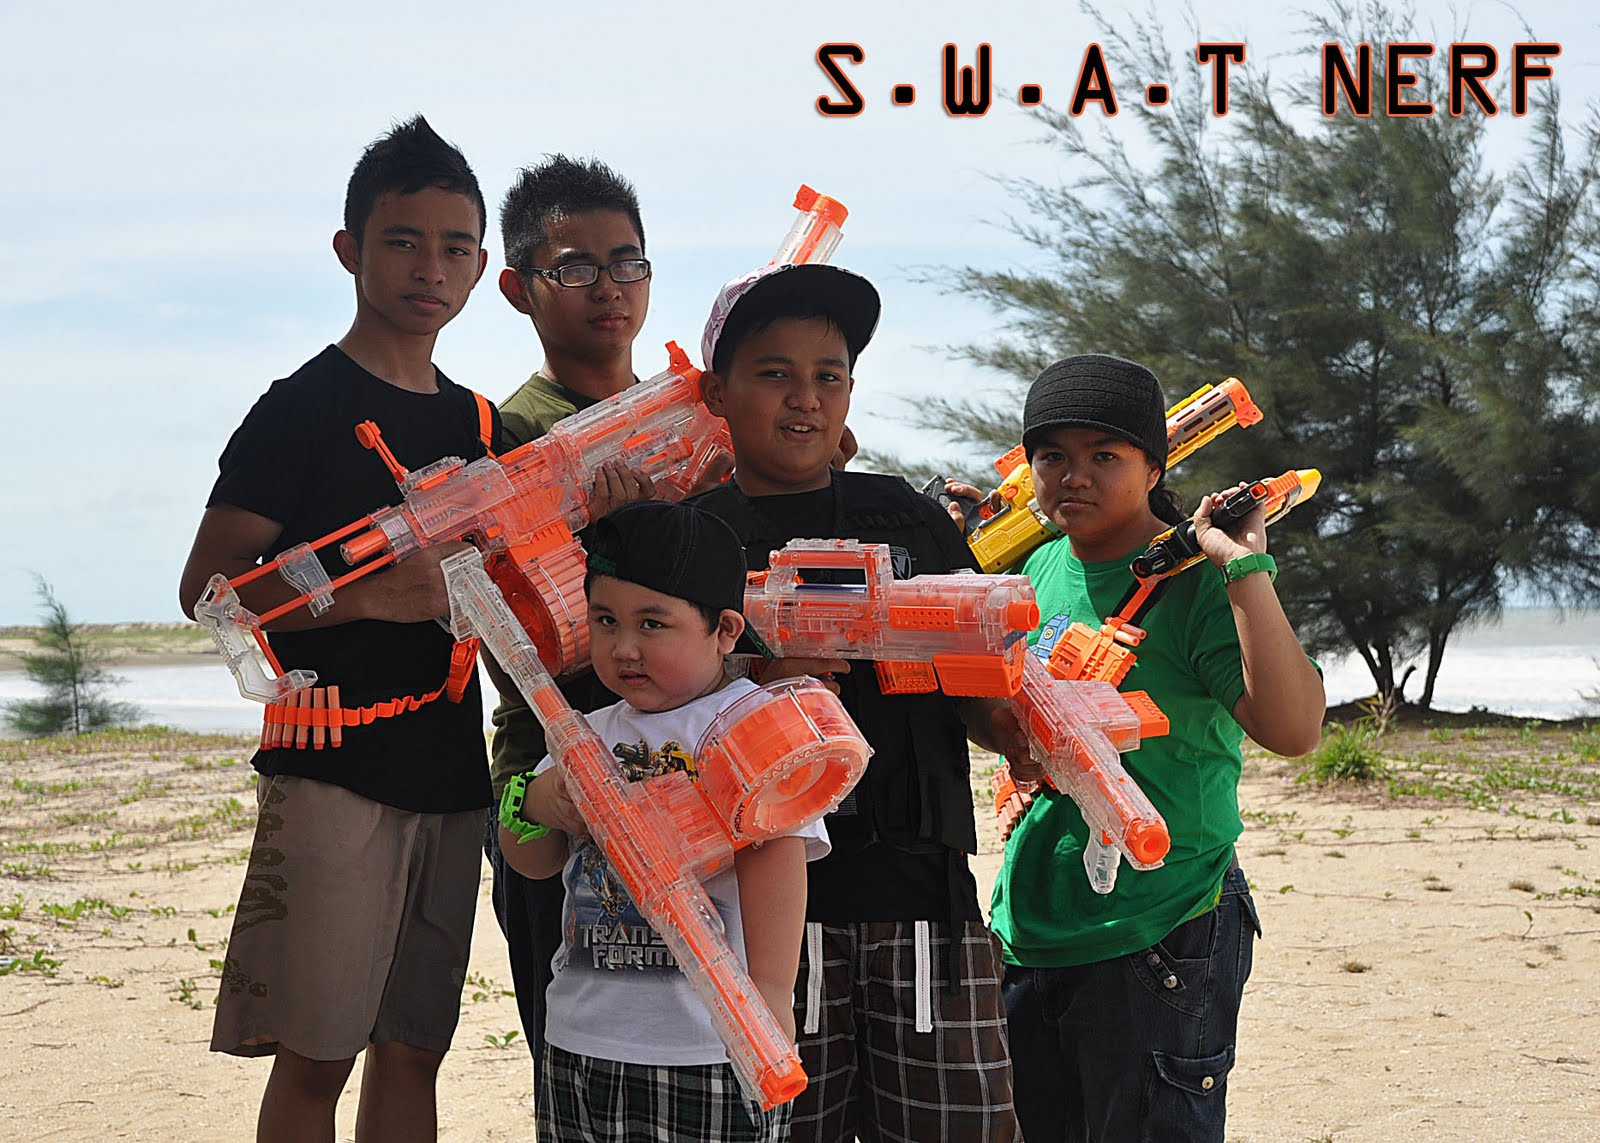 THE 984 FAMILY UNITED: 984 NERF SQUAD